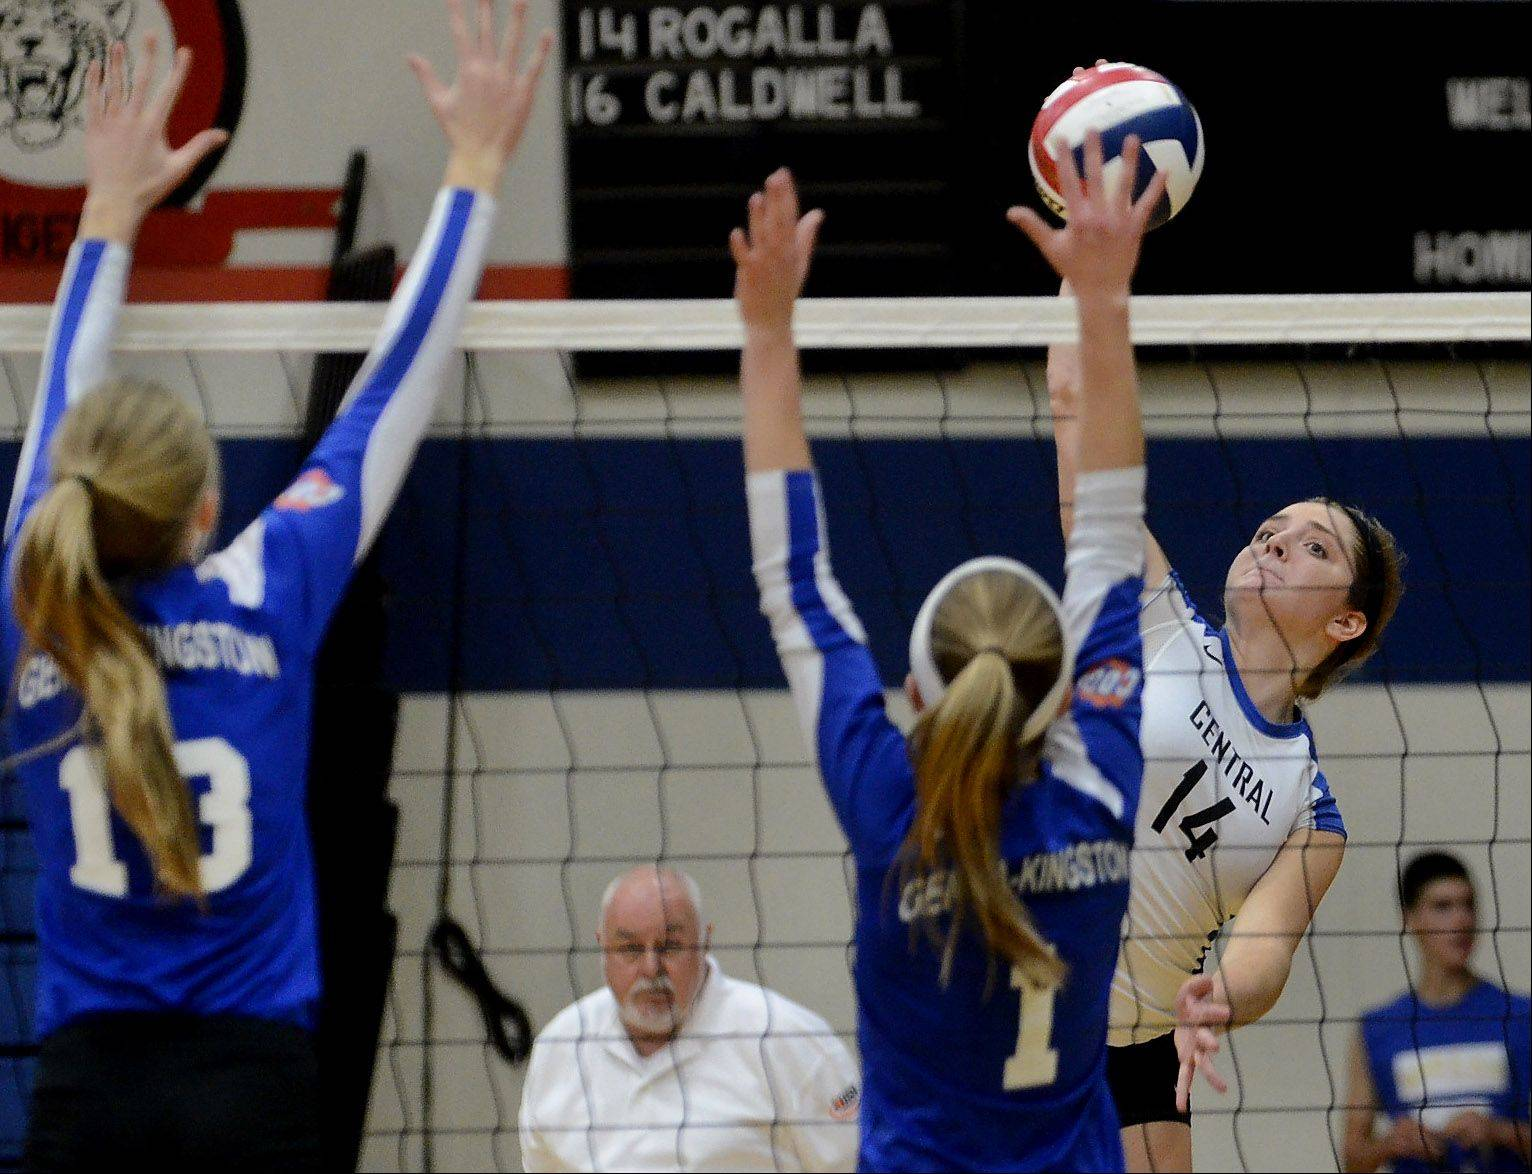 Central's Lauren Wiltsie spikes one past Genoa-Kingston, as Burlington Central defeats Genoa-Kingston volleyball for Class 3A regional title.